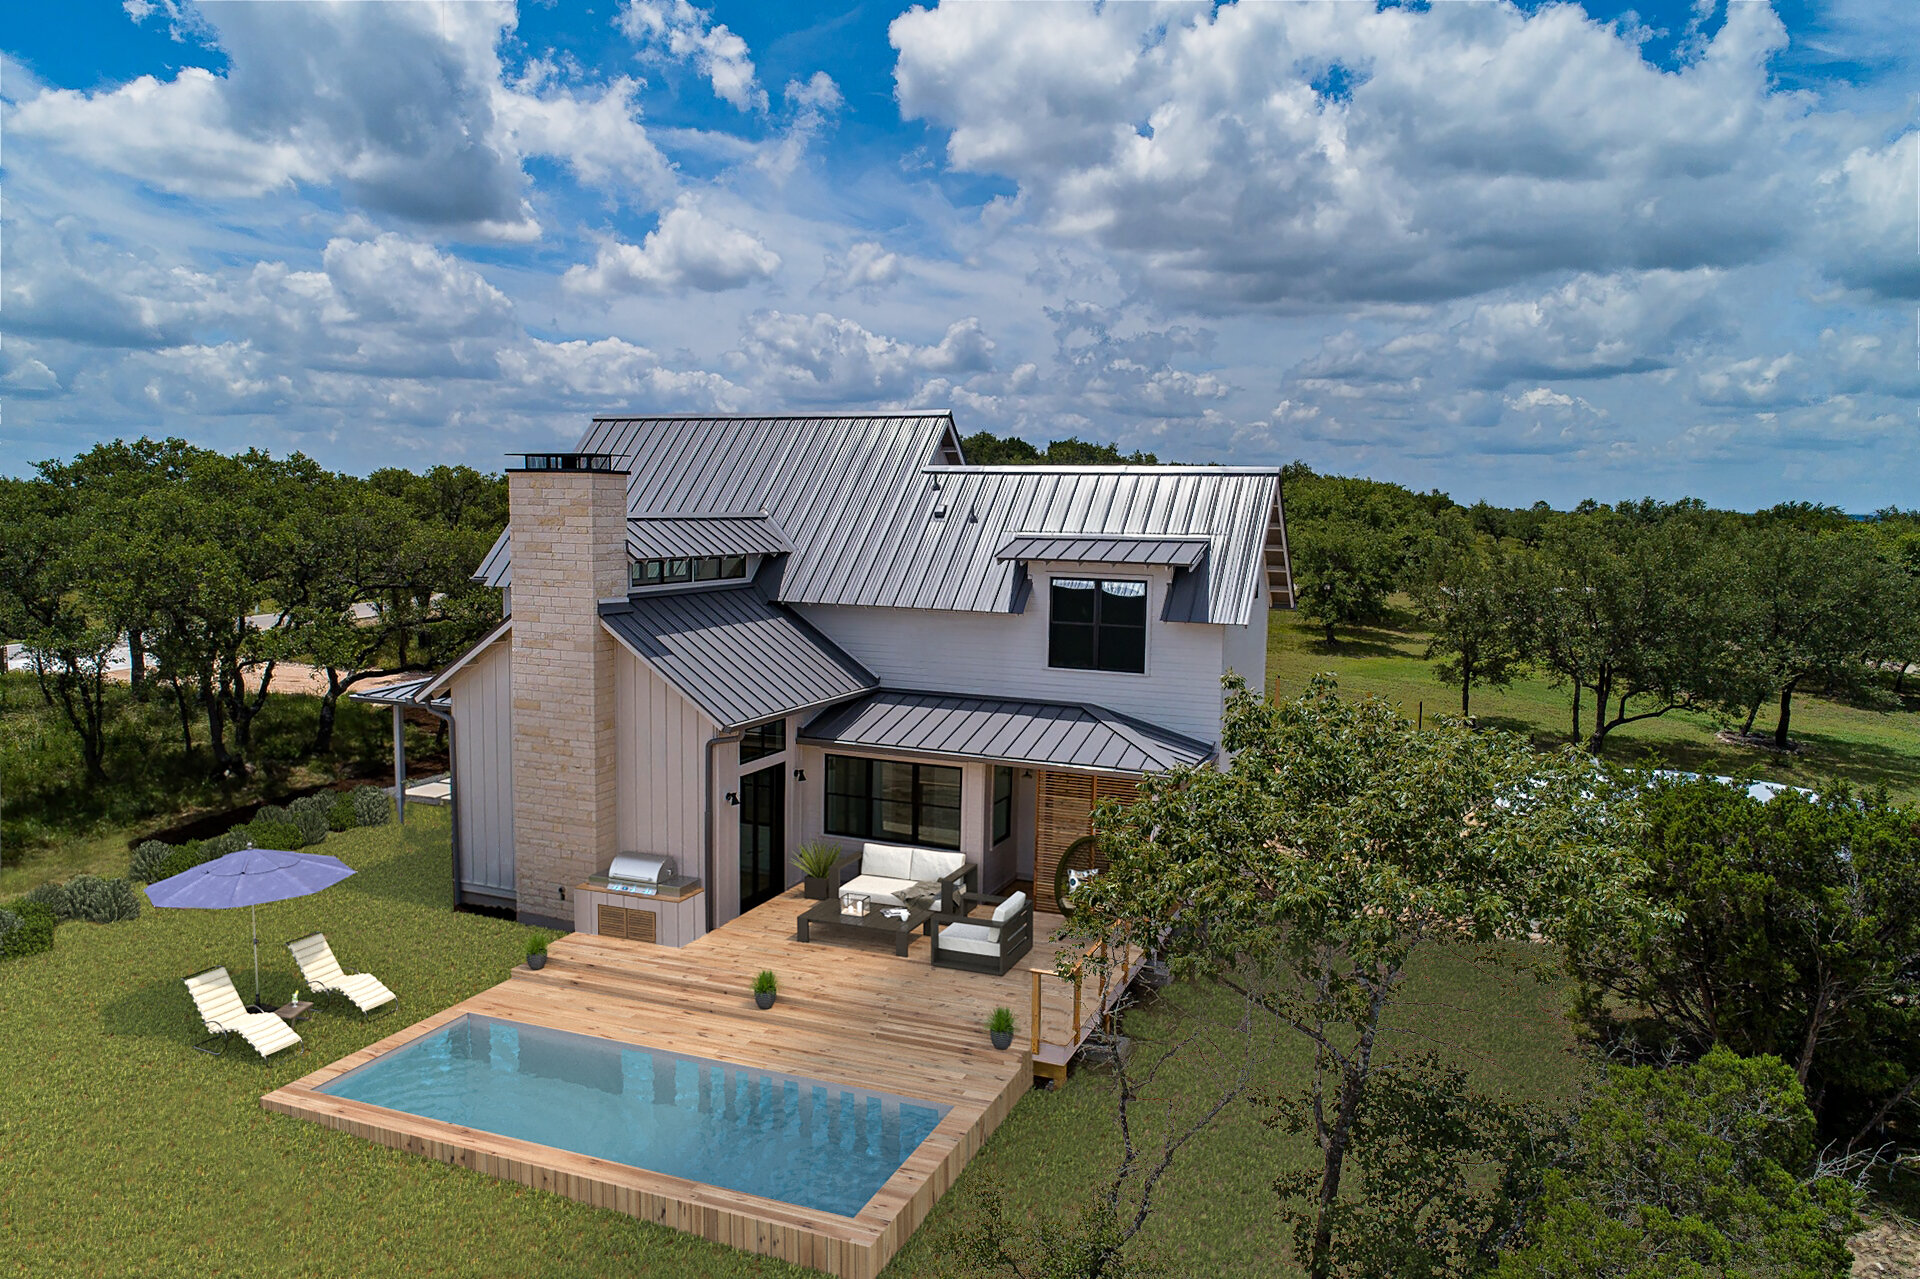 151 Terra Scena Trail - Welcome home! This Modern Farmhouse by Tim Brown Architecture was designed with sustainability, livability, and timeless aesthetics in mind. Nestled into a grove of live oaks on the highest point in Terra Scena. Long distance views and multiple indoor & outdoor living spaces makes this home live large on a small footprint. Unique home features include: 100% Rainwater Harvesting, 30k gallon system (FULL!!!), Solar Pre-wire, native landscaping, healthy indoor air quality, custom/low maintenance finishes.